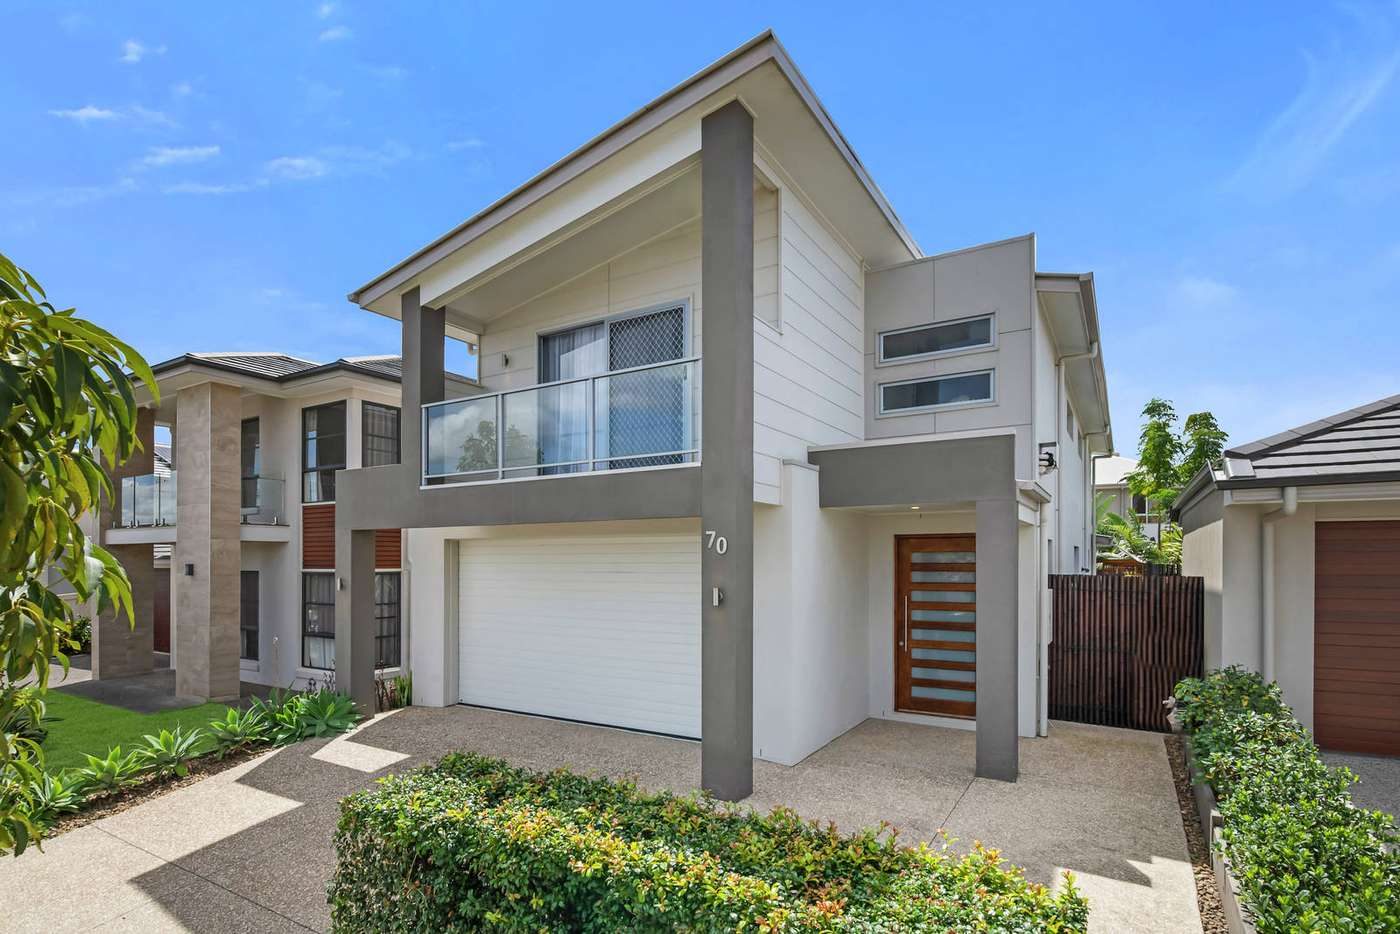 Main view of Homely house listing, 70 Eagle Parade, Rochedale QLD 4123